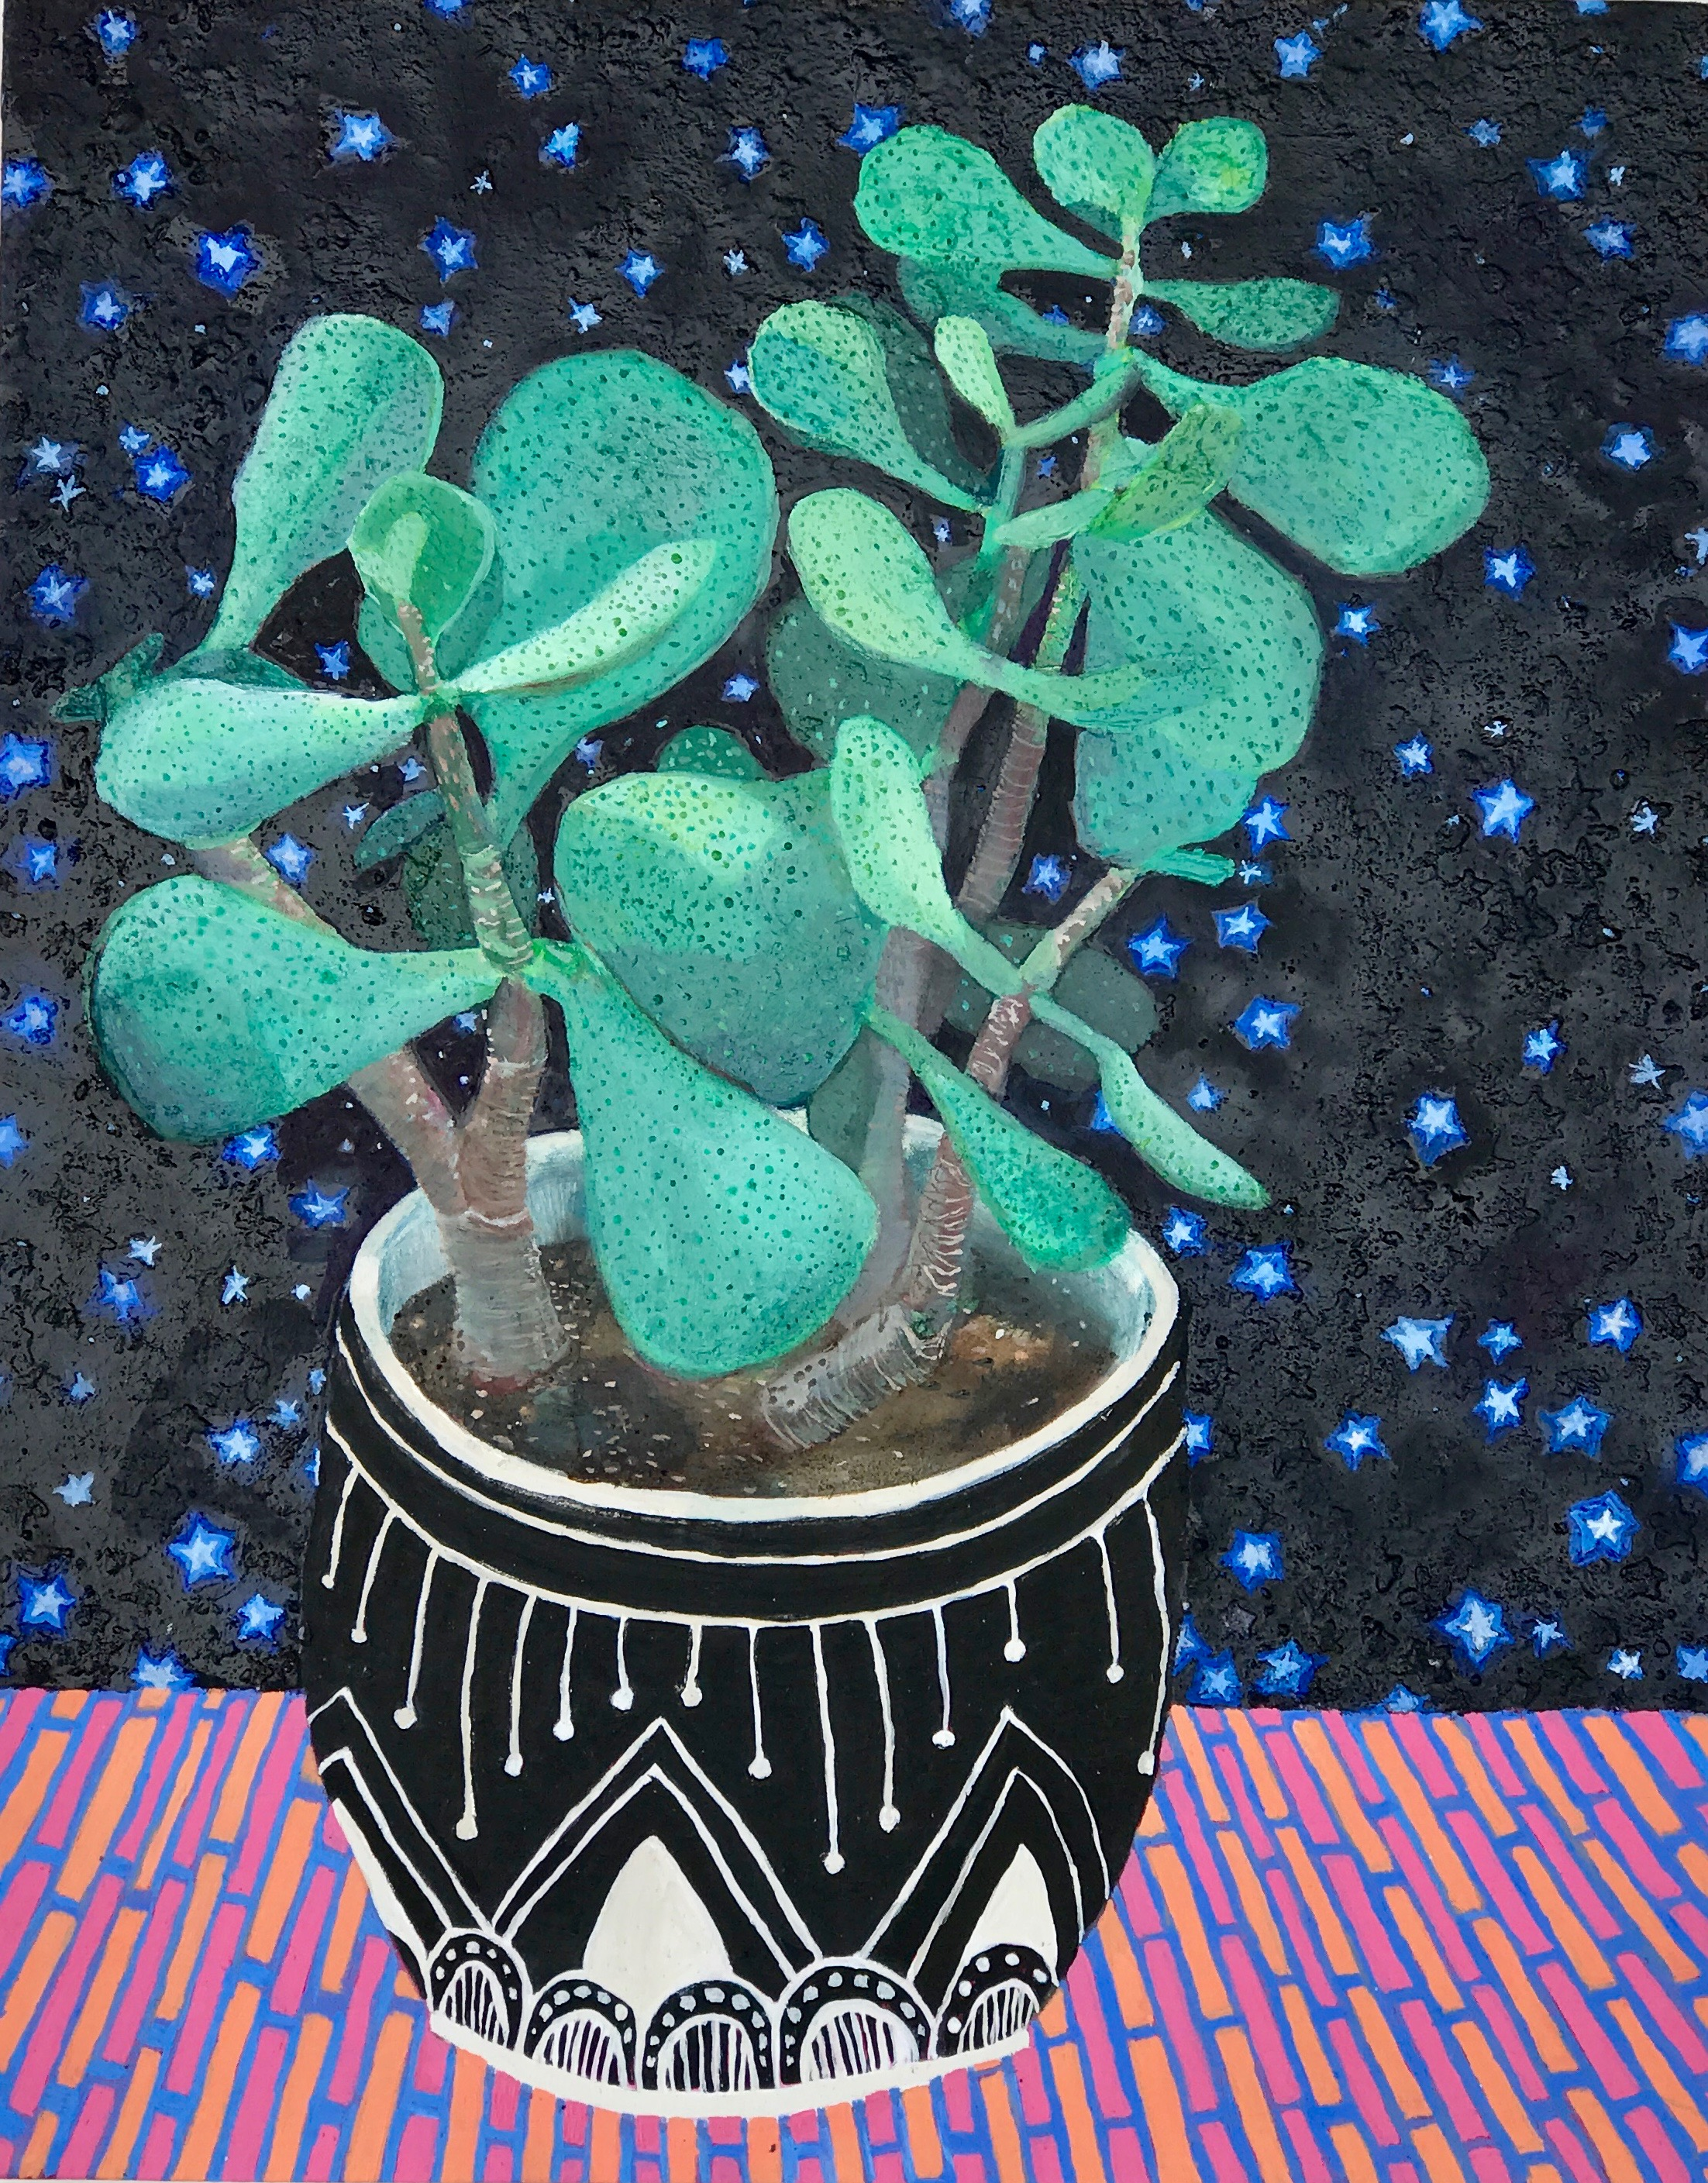 Wishing Upon the Money Plant